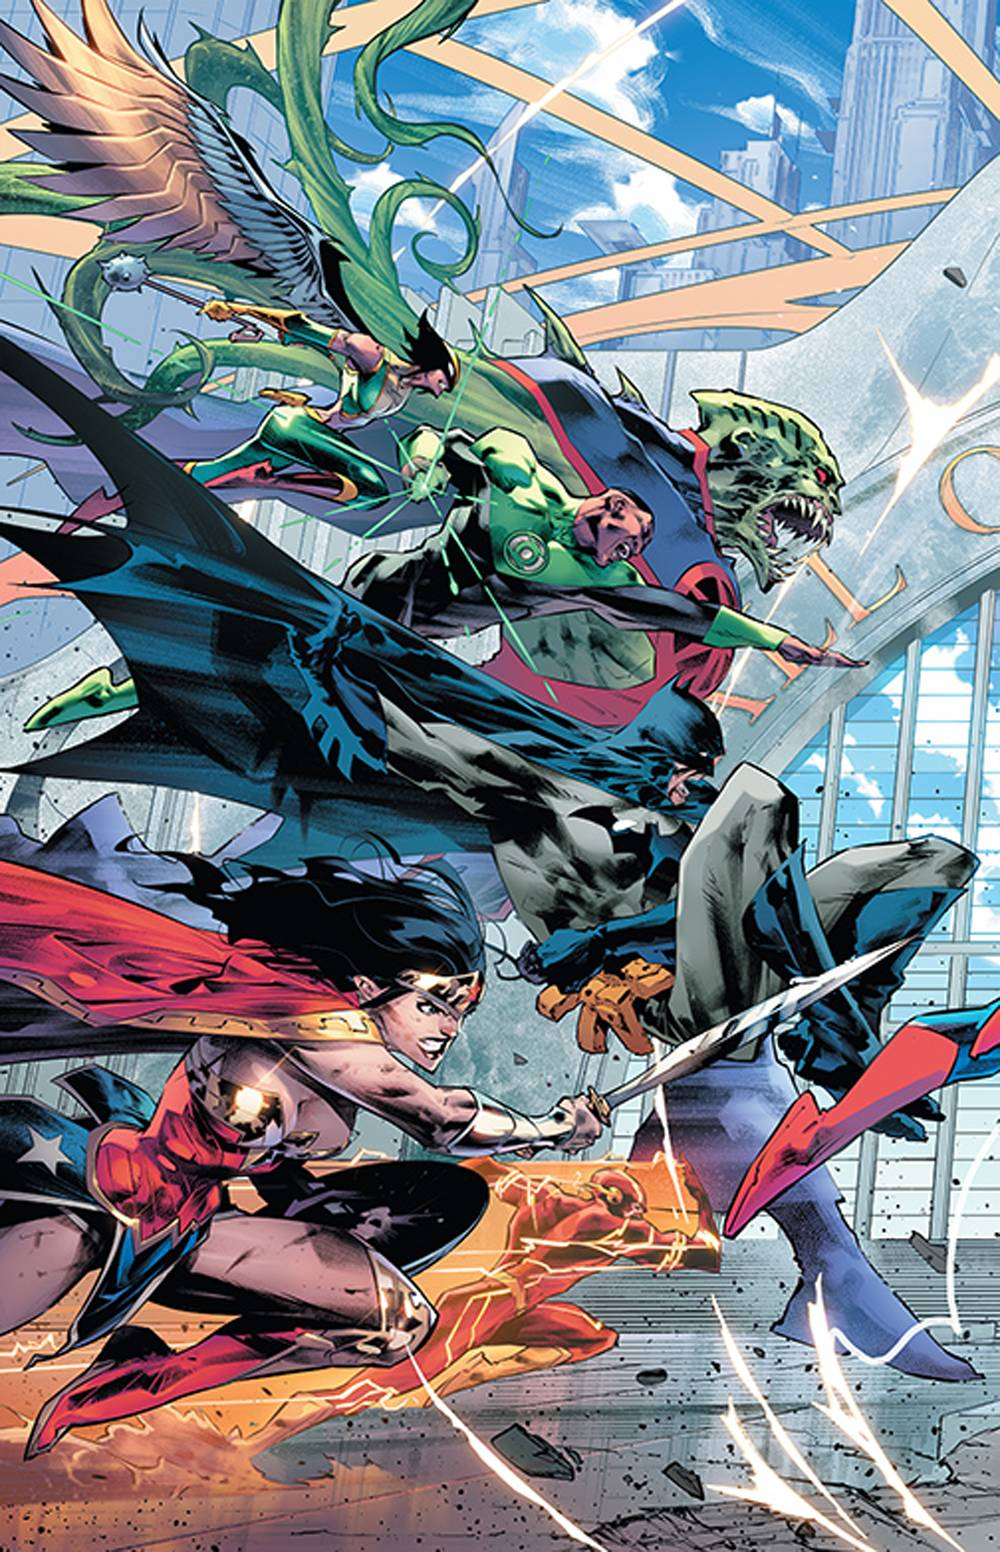 743905_justice-league-20-cover-c JUSTICE LEAGUE #20 to feature a triptych of Jorge Jimenez covers